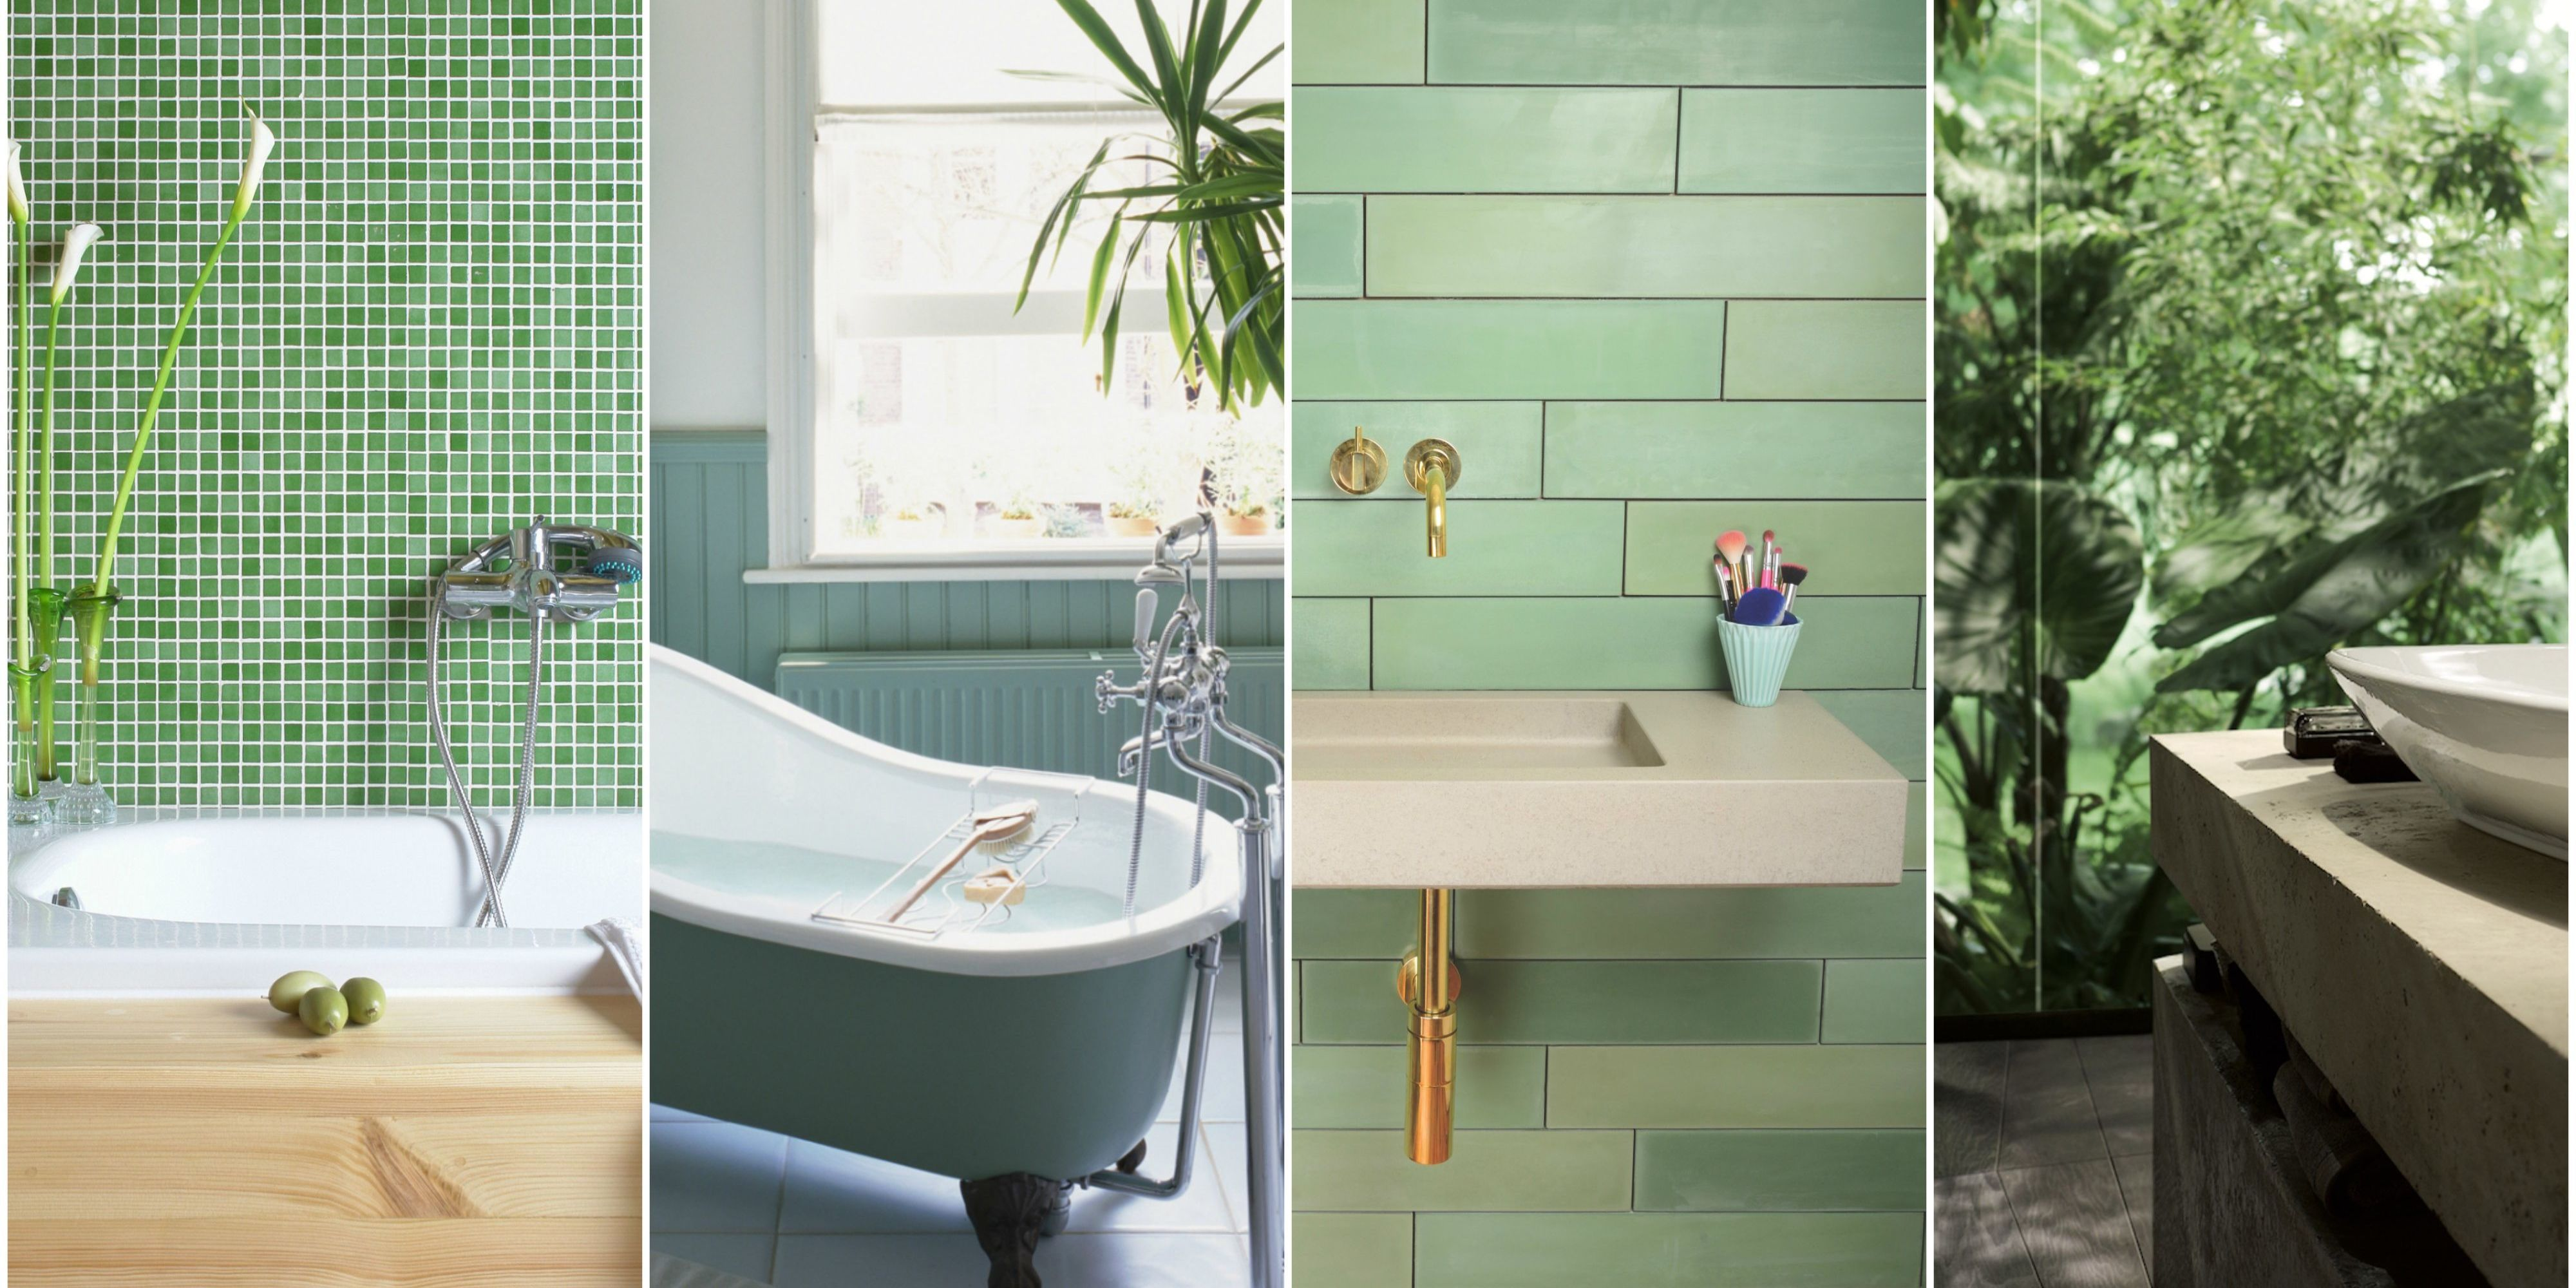 7 Green Bathroom Decor Ideas - Designs, Furniture and Accessories